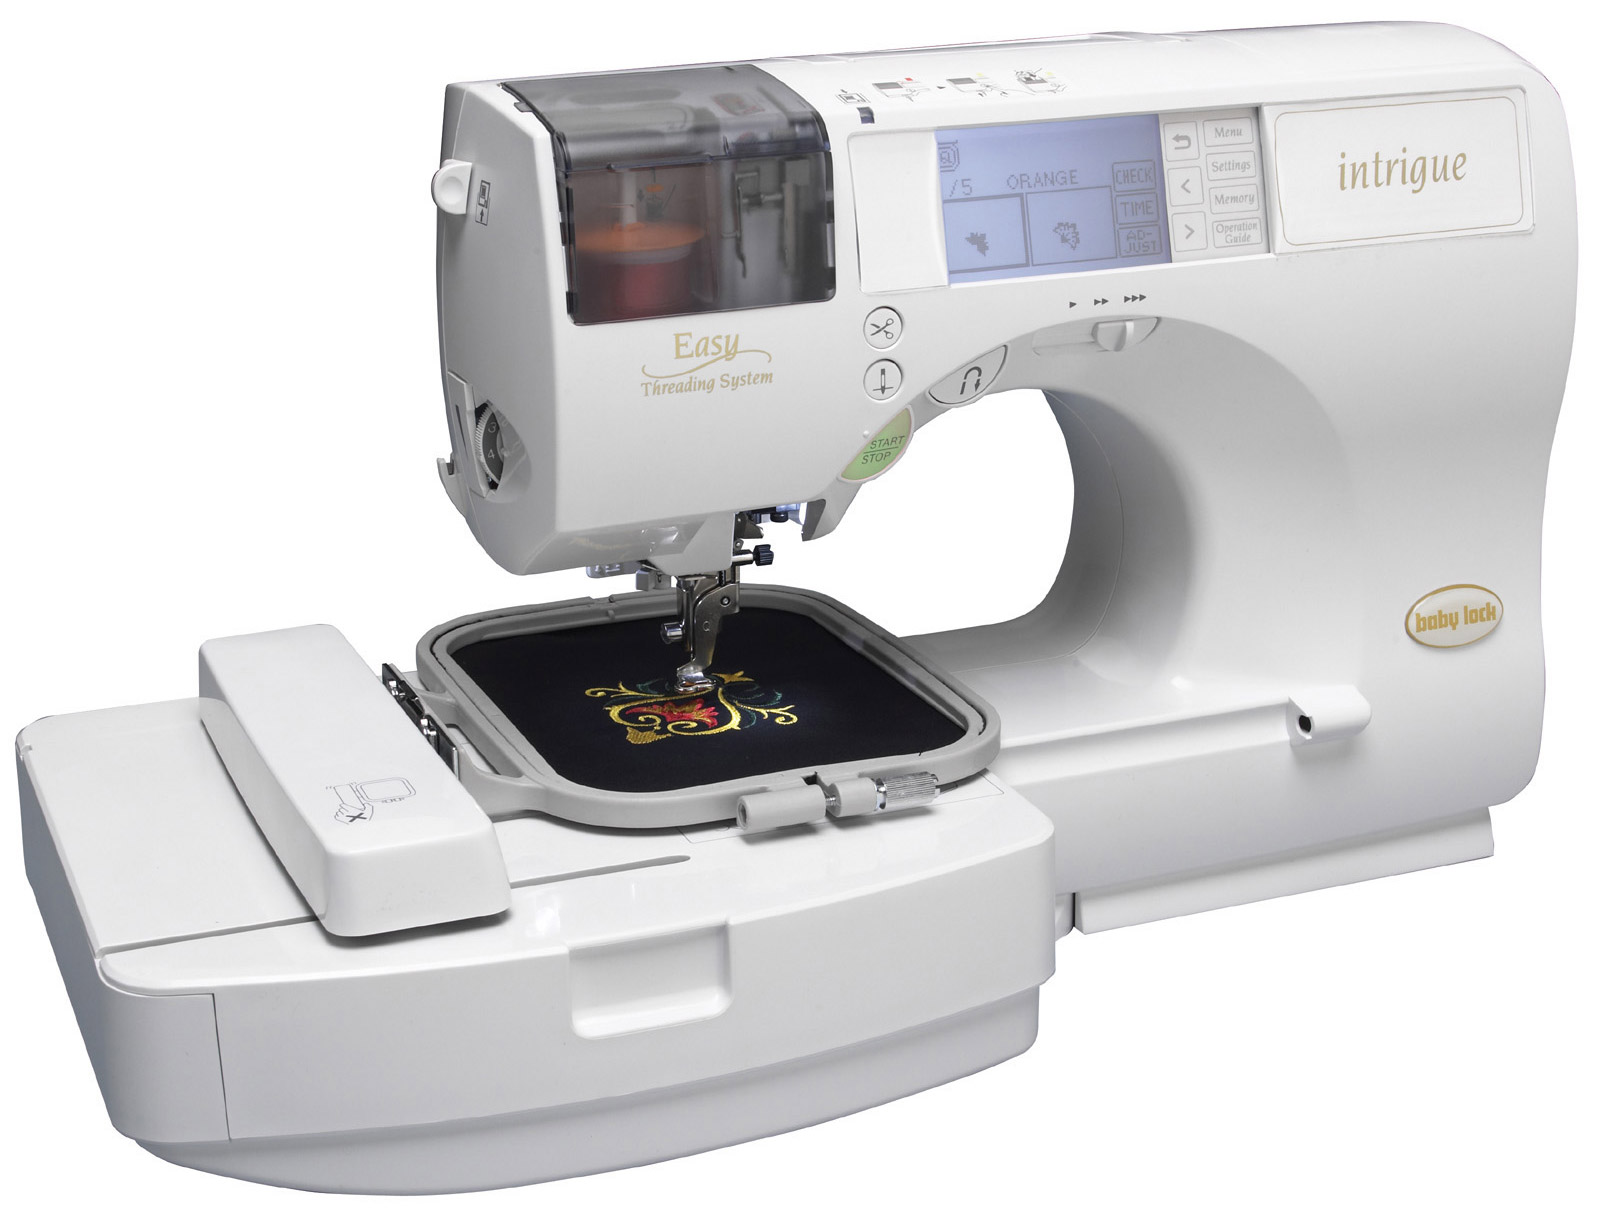 Baby Lock Embroidery and Sewing Machine Intrigue INT